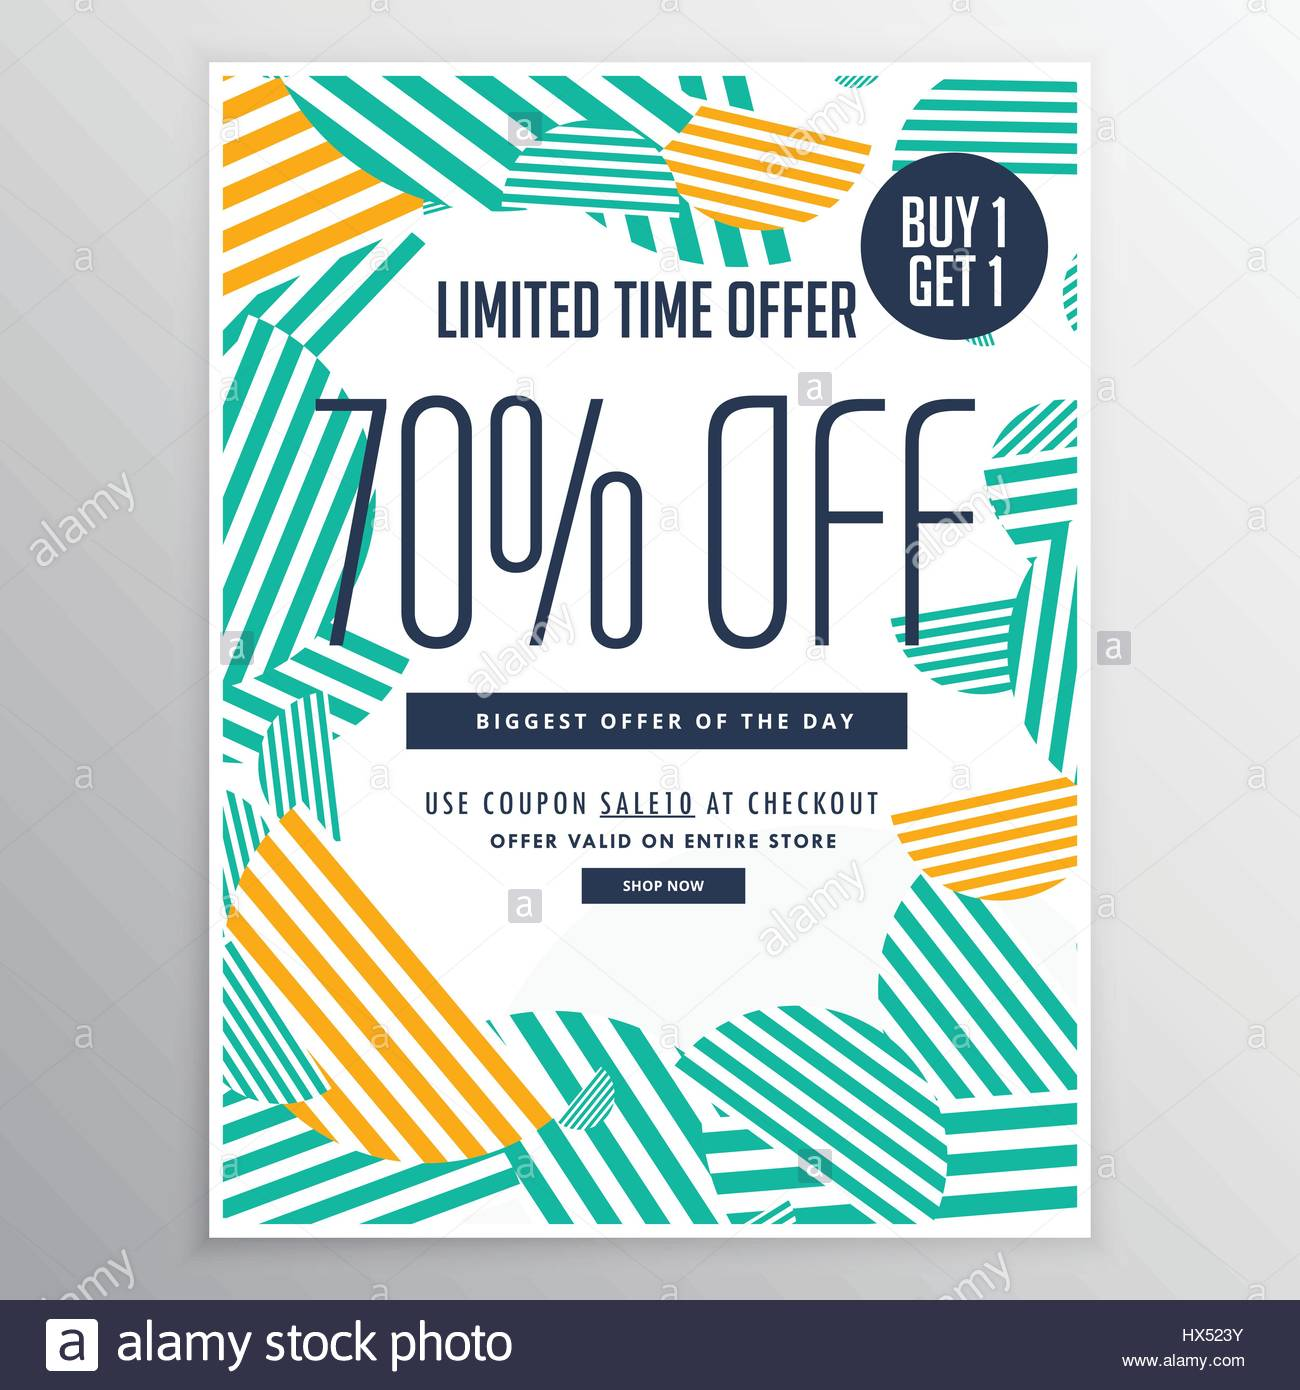 Modern Trendy Sale Promotional Discount Brochure Template With - Promotional brochure template